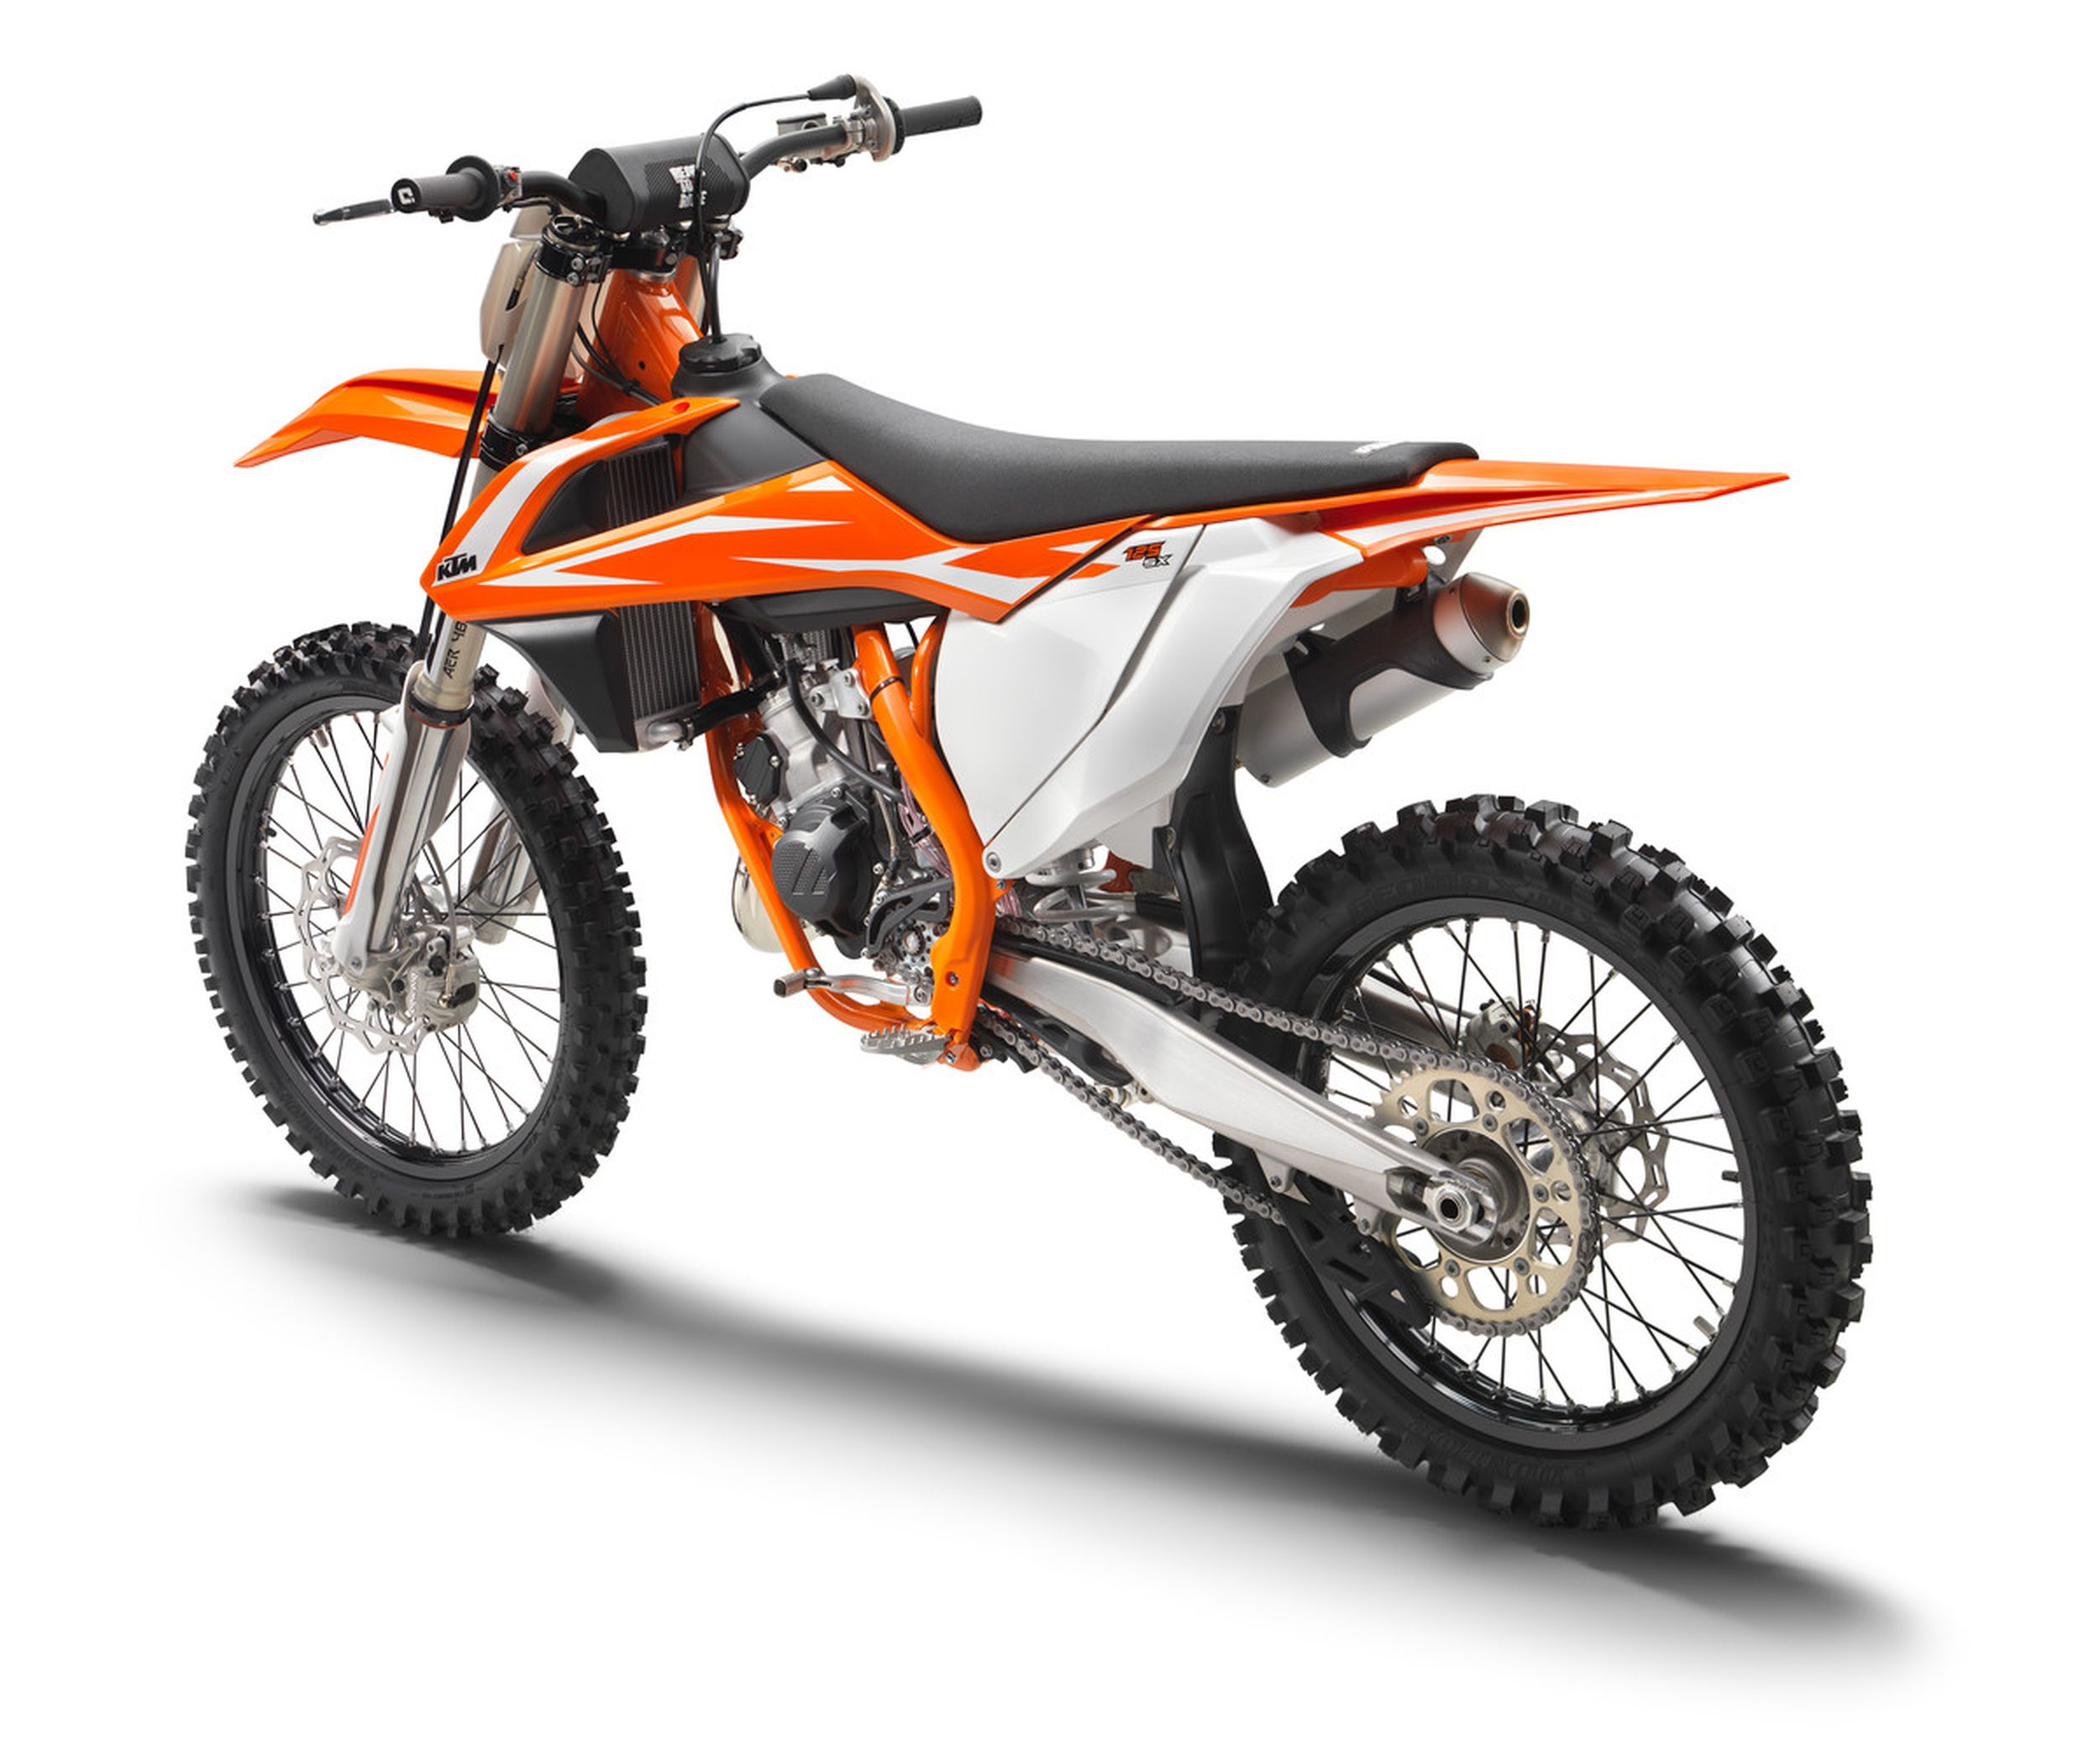 Ktm Six Days Price